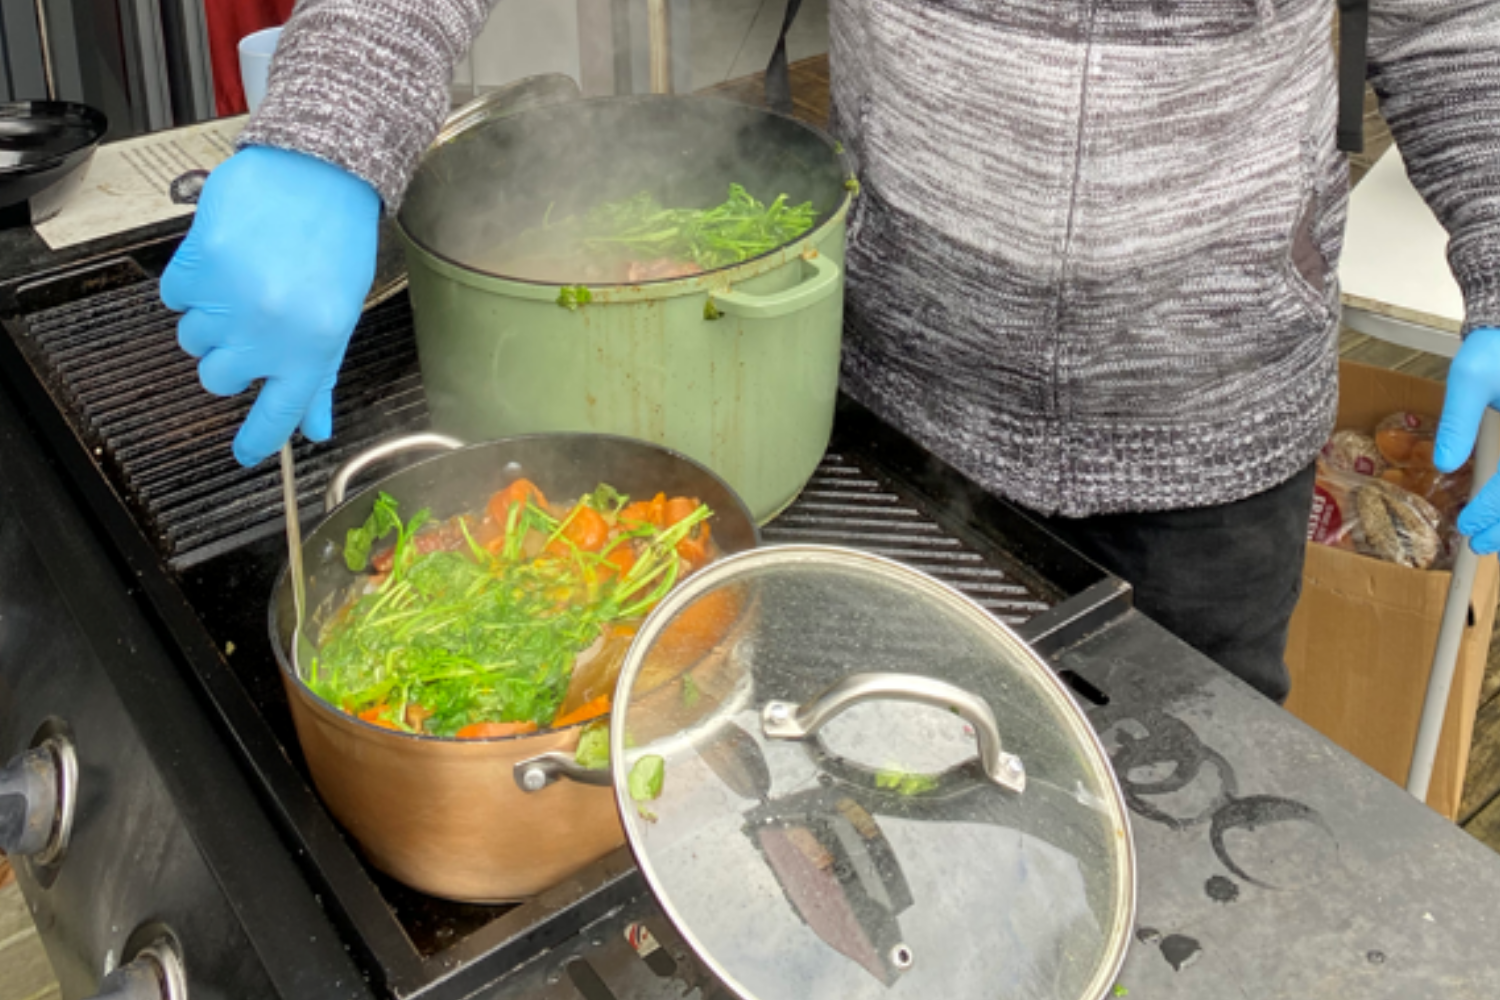 Close-up of a boiling pot of food, man wearing blue gloves stirring the vegetables and boil-up ingredients.